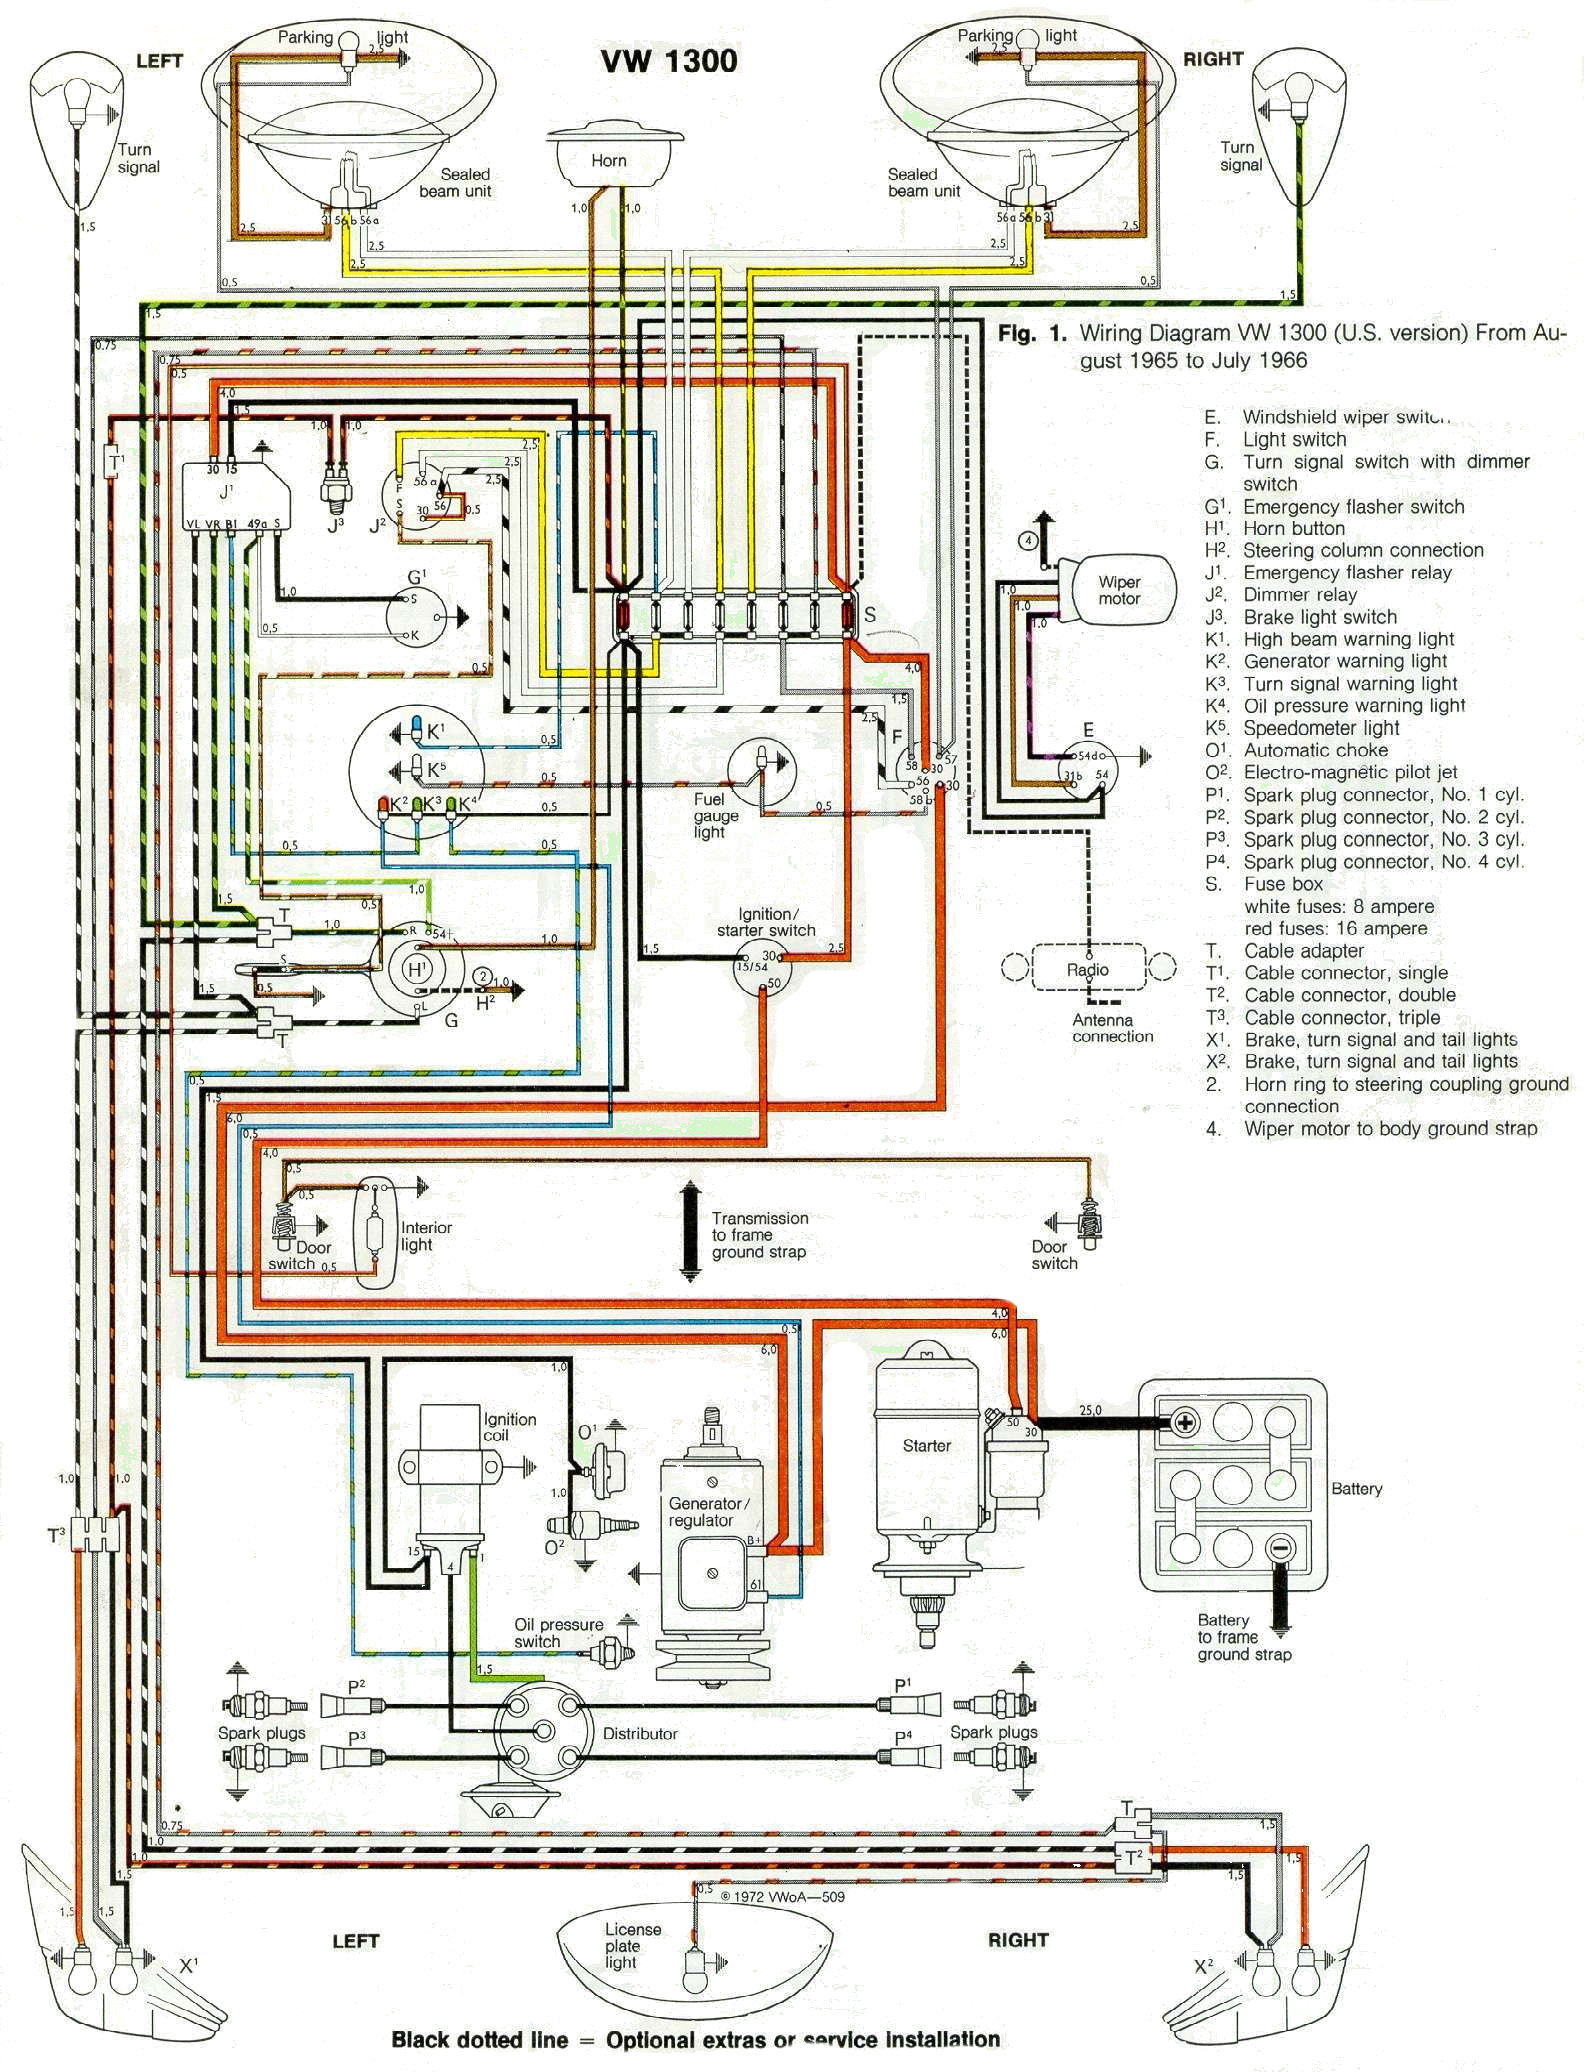 1964 Vw Bug Wiring Diagram | Wiring Diagram  Vw Wiring Diagram on 1971 vw super beetle starter diagram, 70 vw beetle, 70 vw chassis, 70 vw engine, bay window diagram, 1968 vw beetle speedometer diagram, 1970 vw electrical diagram, 74 super beetle front end diagram, vw type 3 engine diagram, vw beetle fuse box diagram, 2nd gen eclipse alternator diagram,